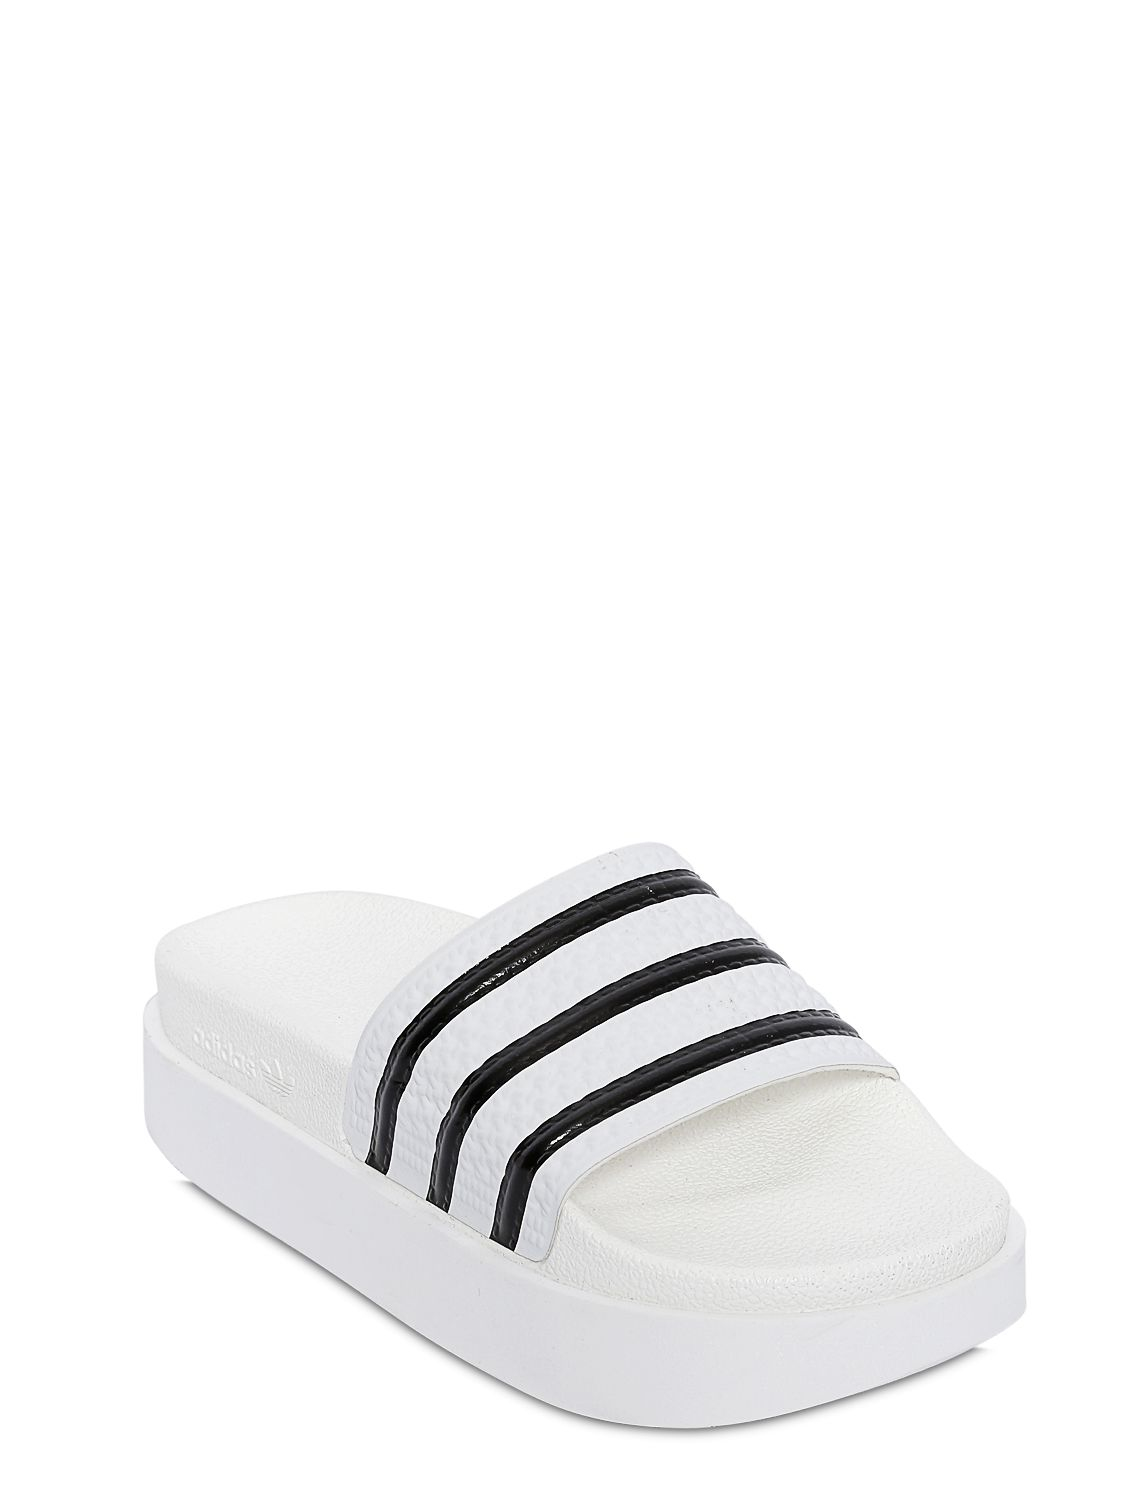 Adidas Originals Adilette Bold Rubber Slides In White Lyst